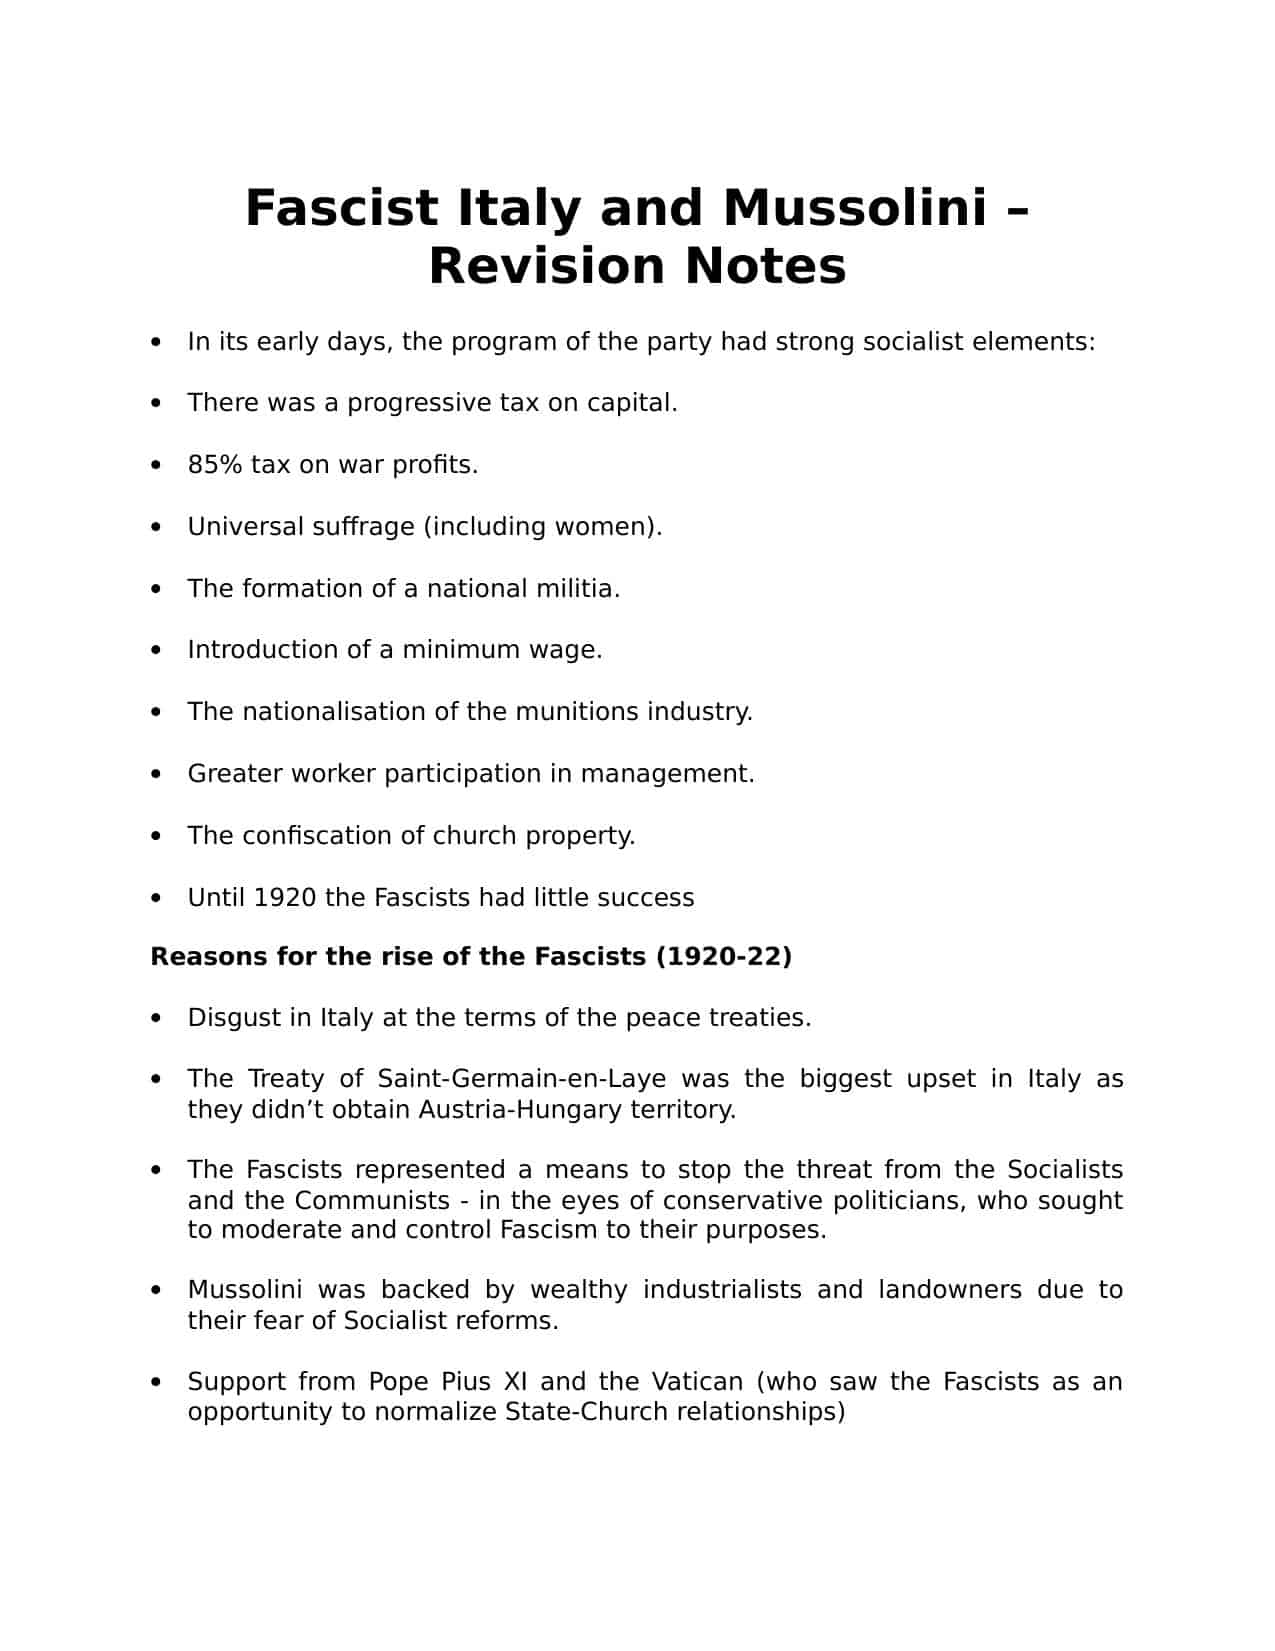 Fascist Italy And Mussolini Worksheet